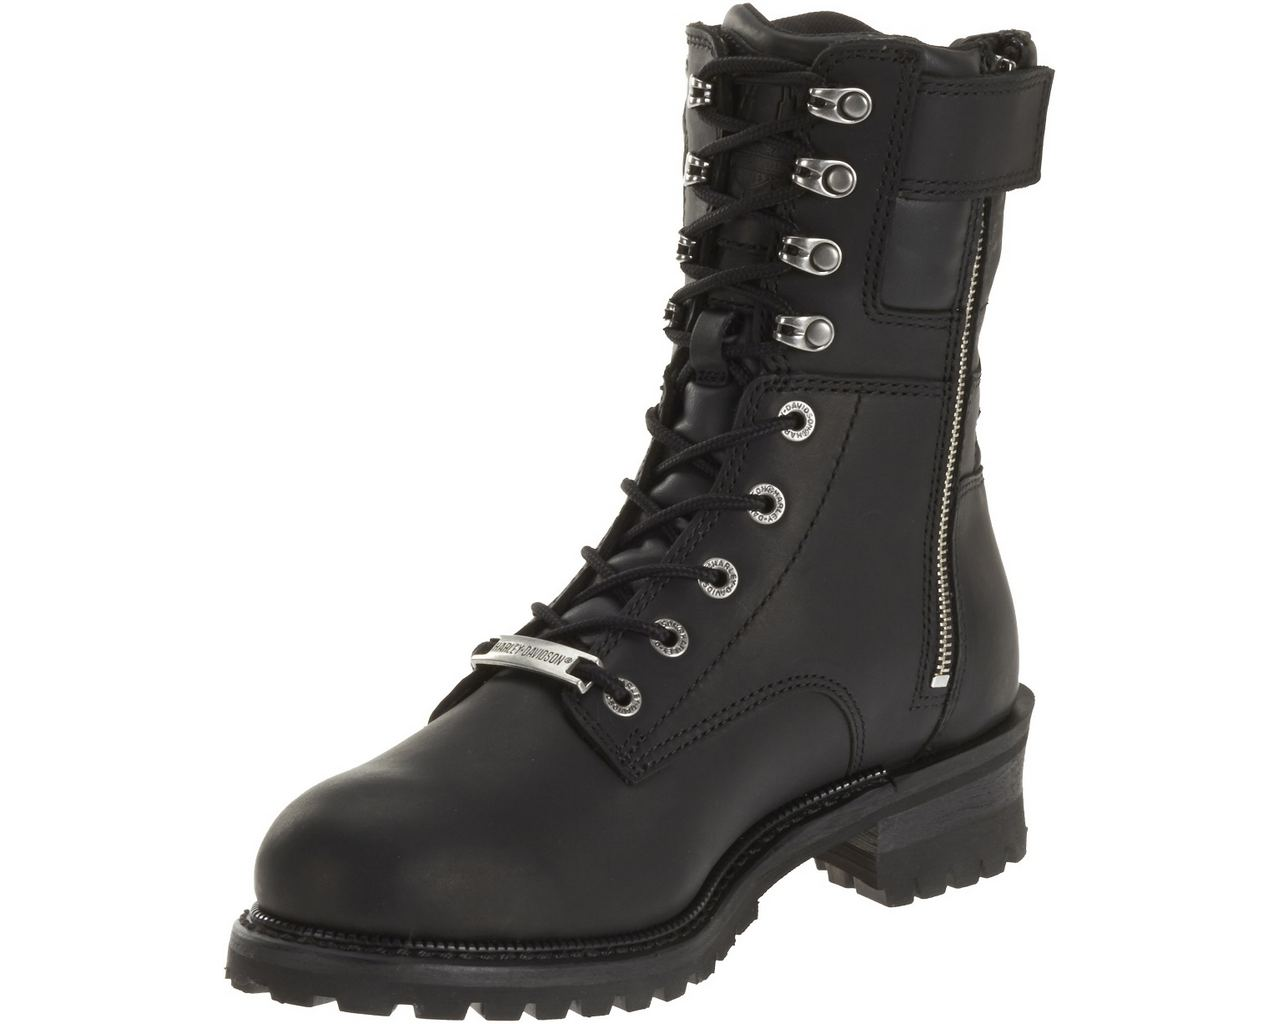 harley davidson s elson black leather motorcycle boots